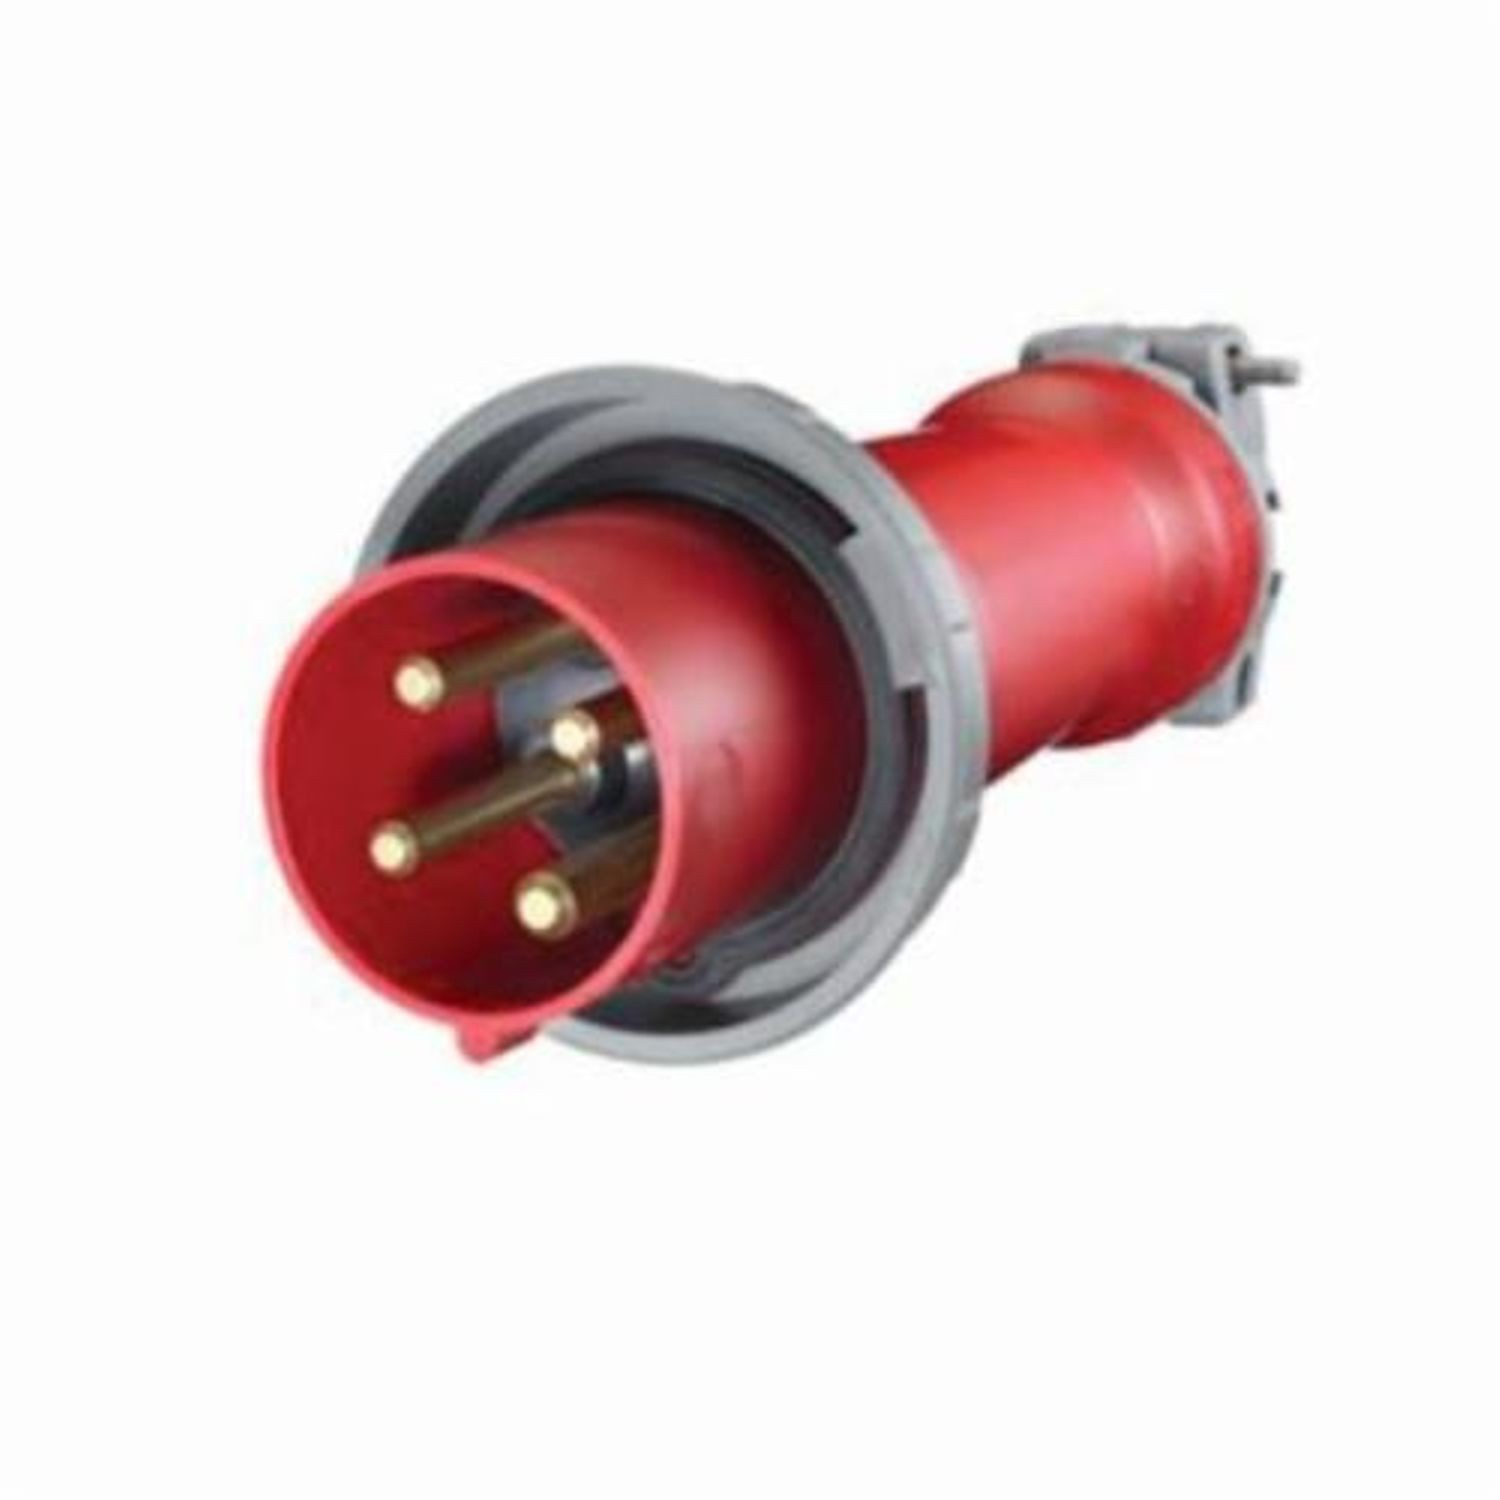 Wiring Device Kellems Hbl4100p7w 3 Phase Watertight Iec Pin And 4 Wire Sleeve Plug 480 Vac 100 A Poles Wires Red